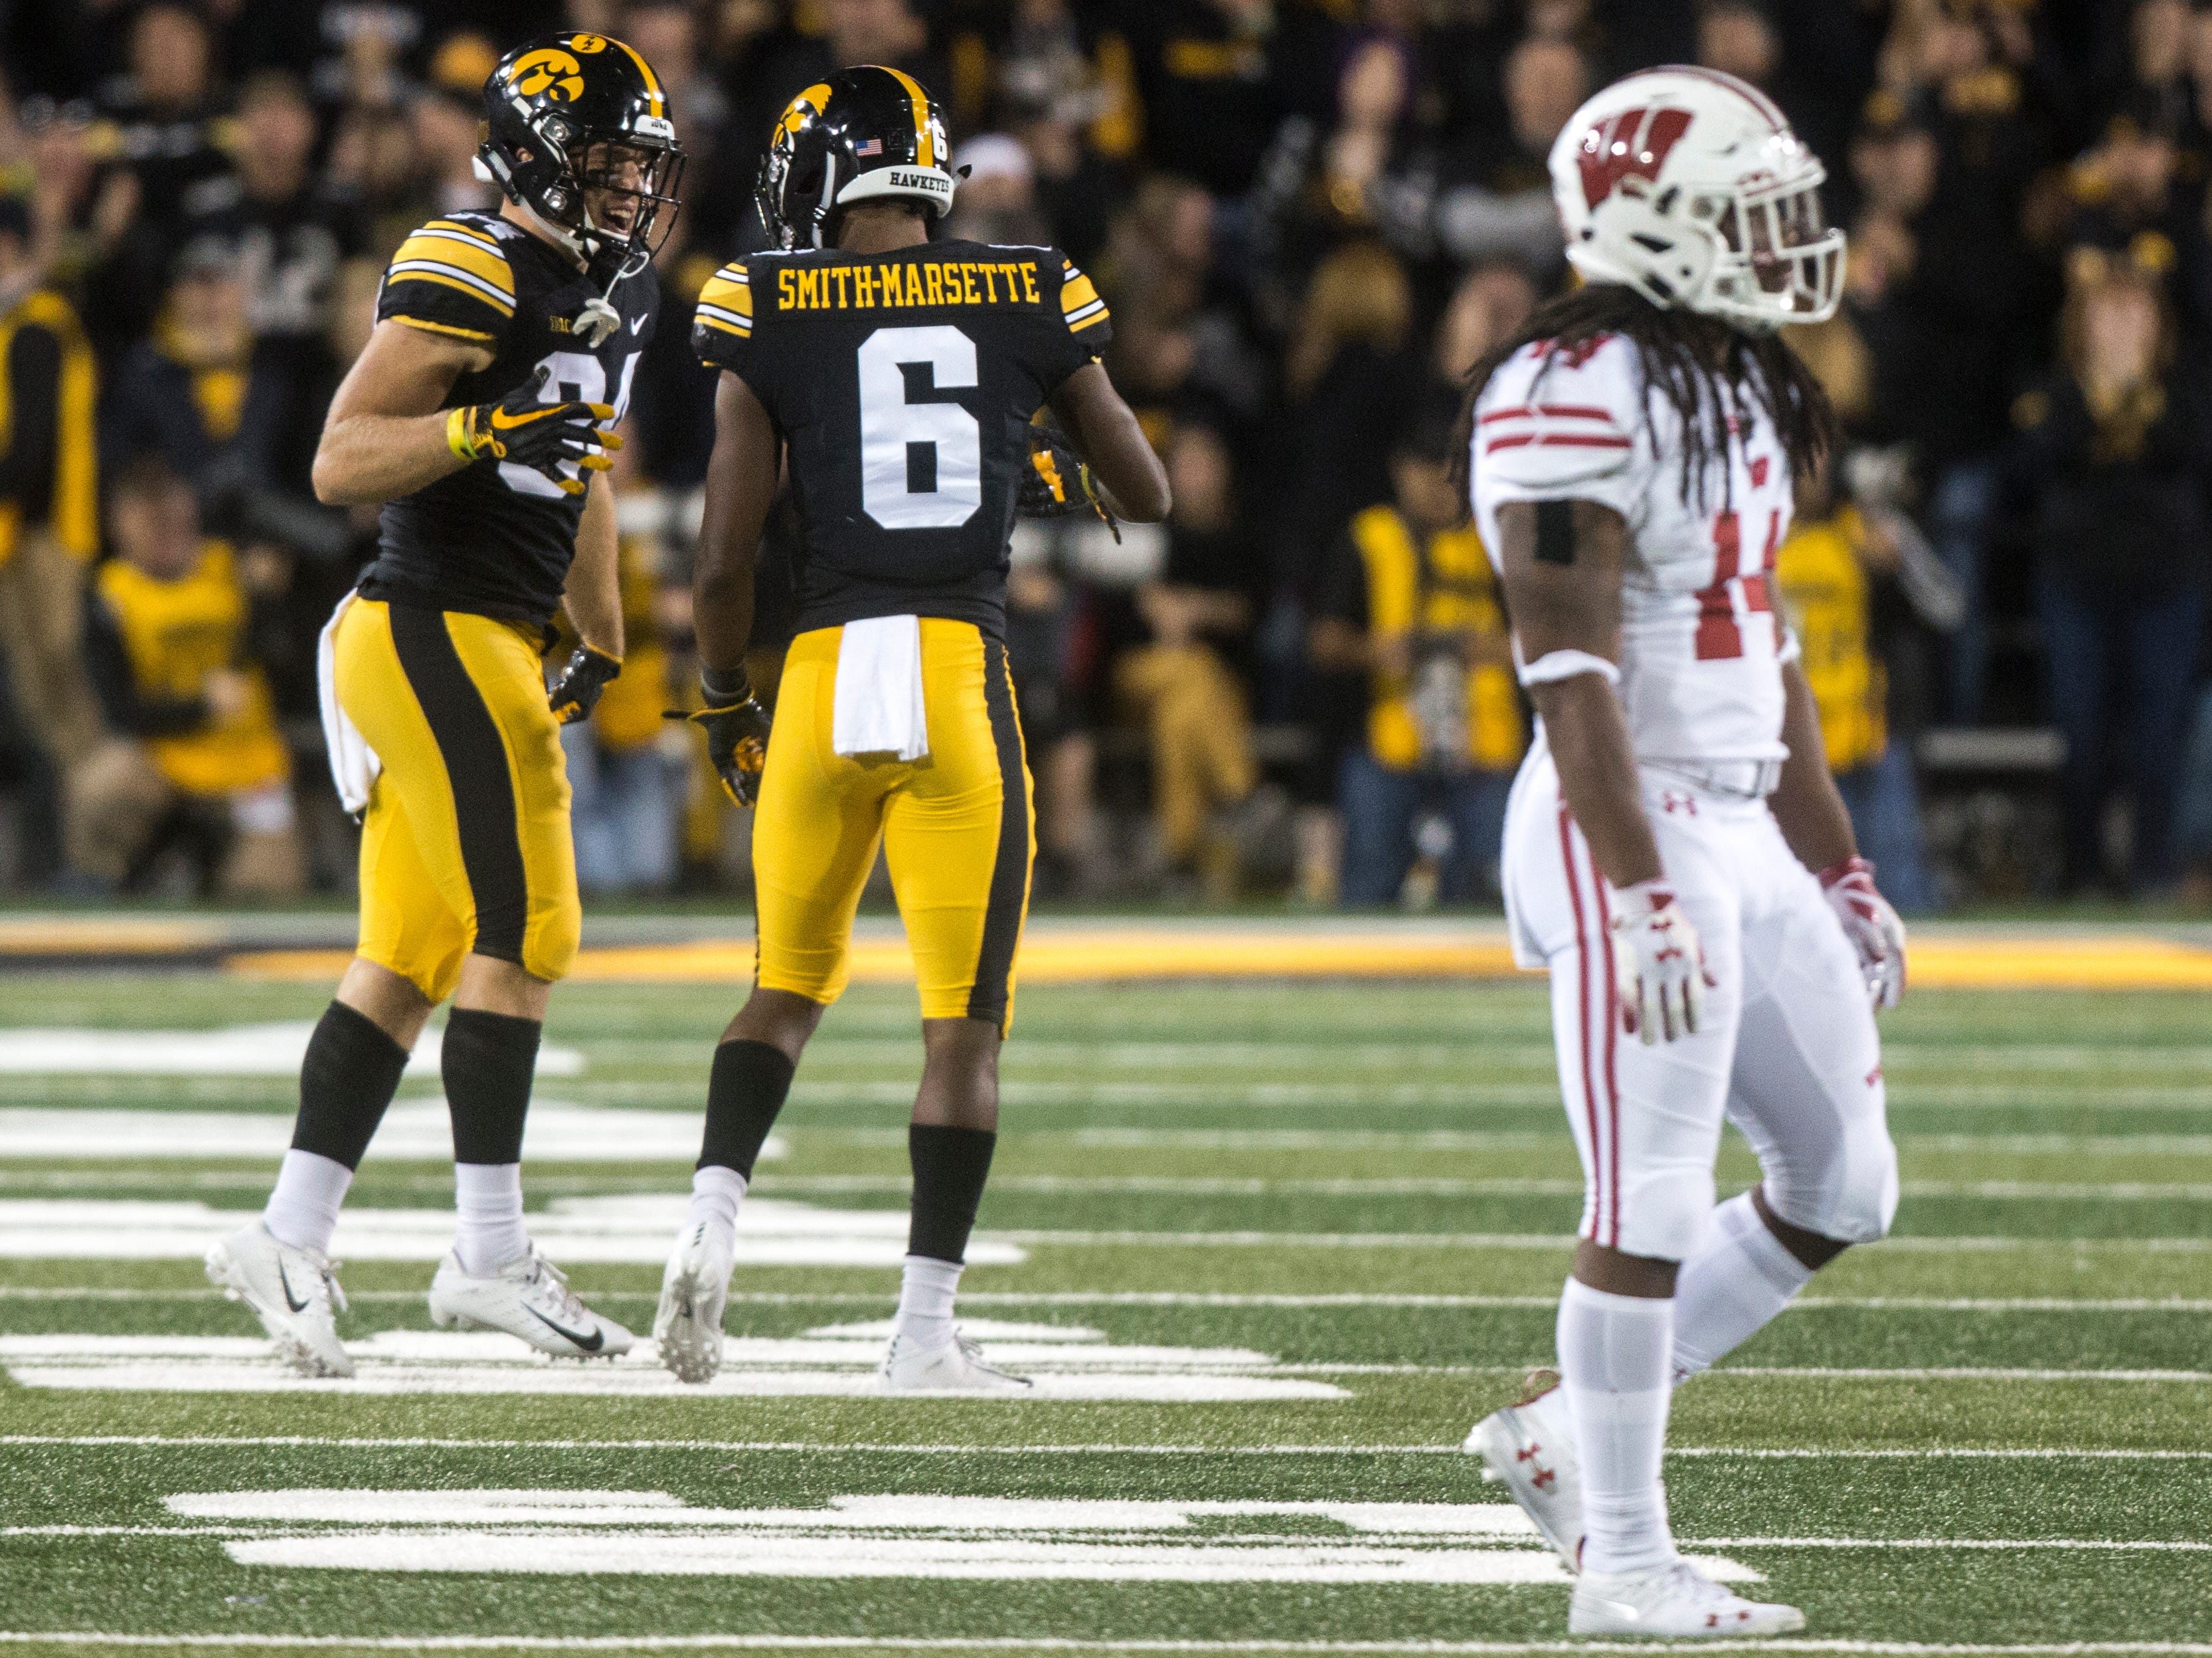 Iowa wide receiver Nick Easley (84) celebrates with Iowa wide receiver Ihmir Smith-Marsette (6) during an NCAA football game on Saturday, Sept. 22, 2018, at Kinnick Stadium in Iowa City.